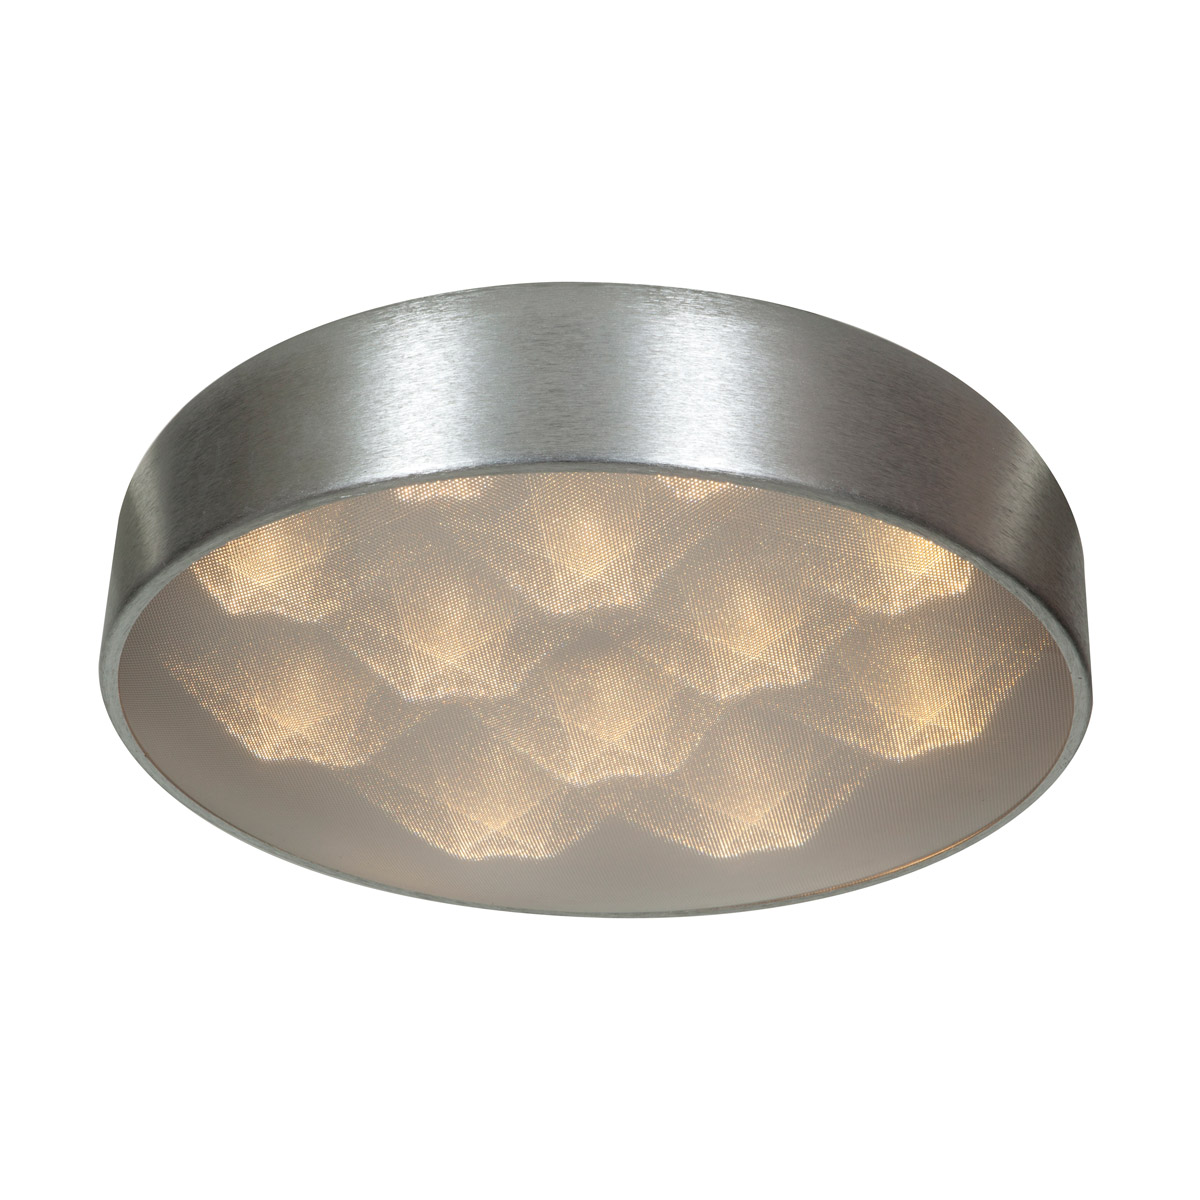 Access Lighting 70080LEDD-BSL ACR Meteor LED 13 inch Brushed Silver Flush Mount Ceiling Light by Access Lighting